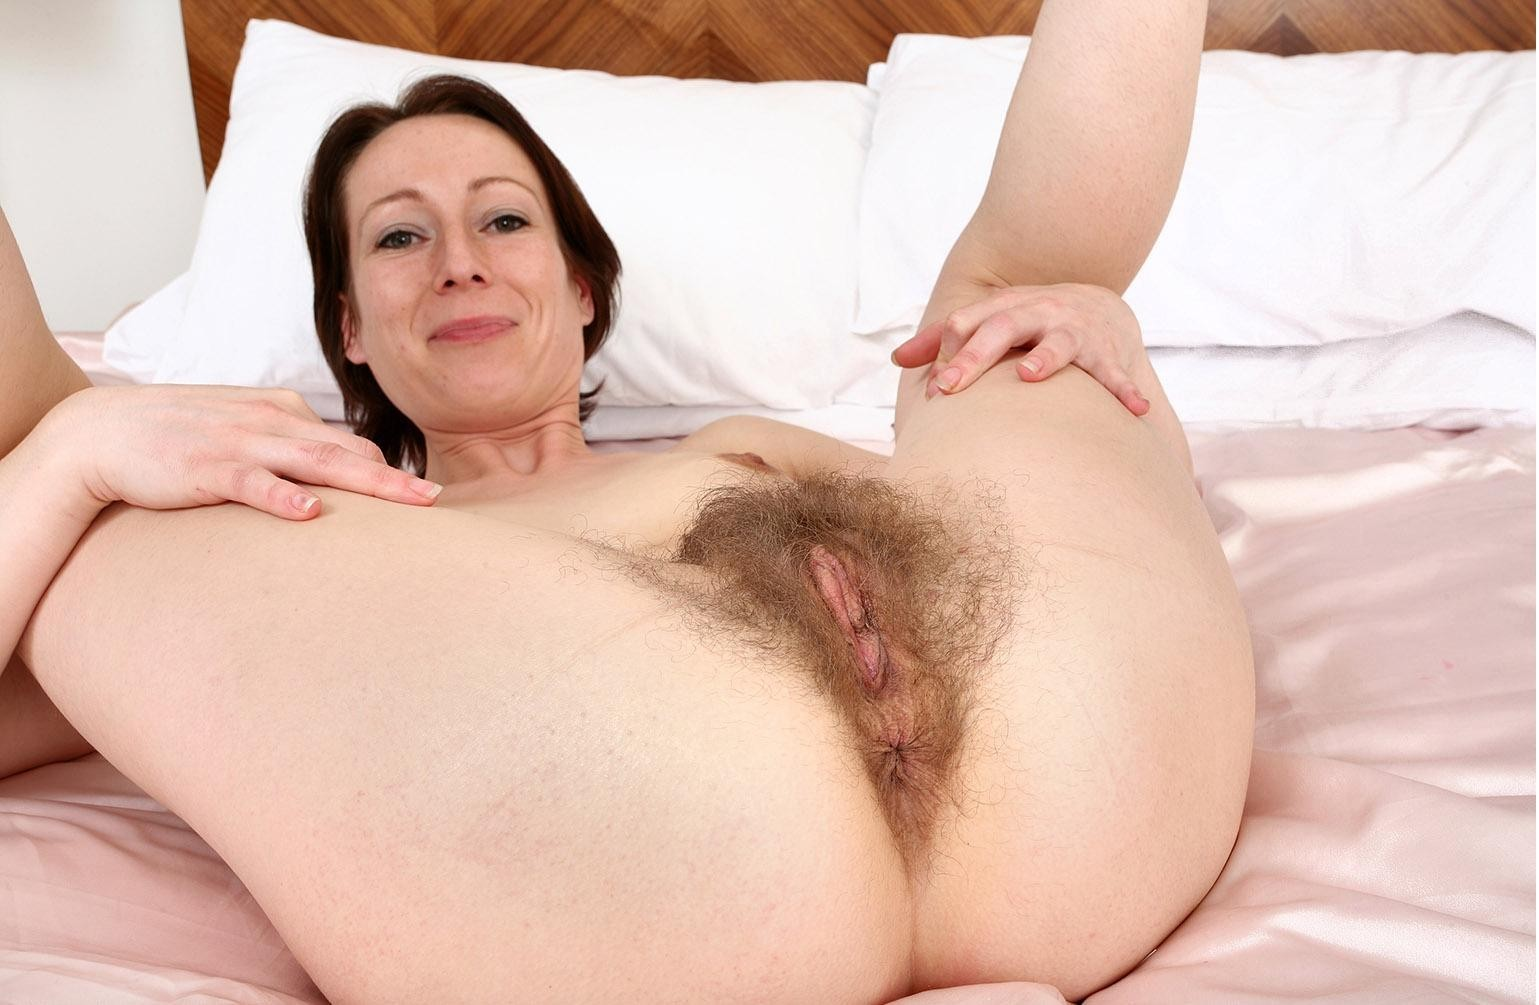 Very grateful Nude moms hairy pussy and